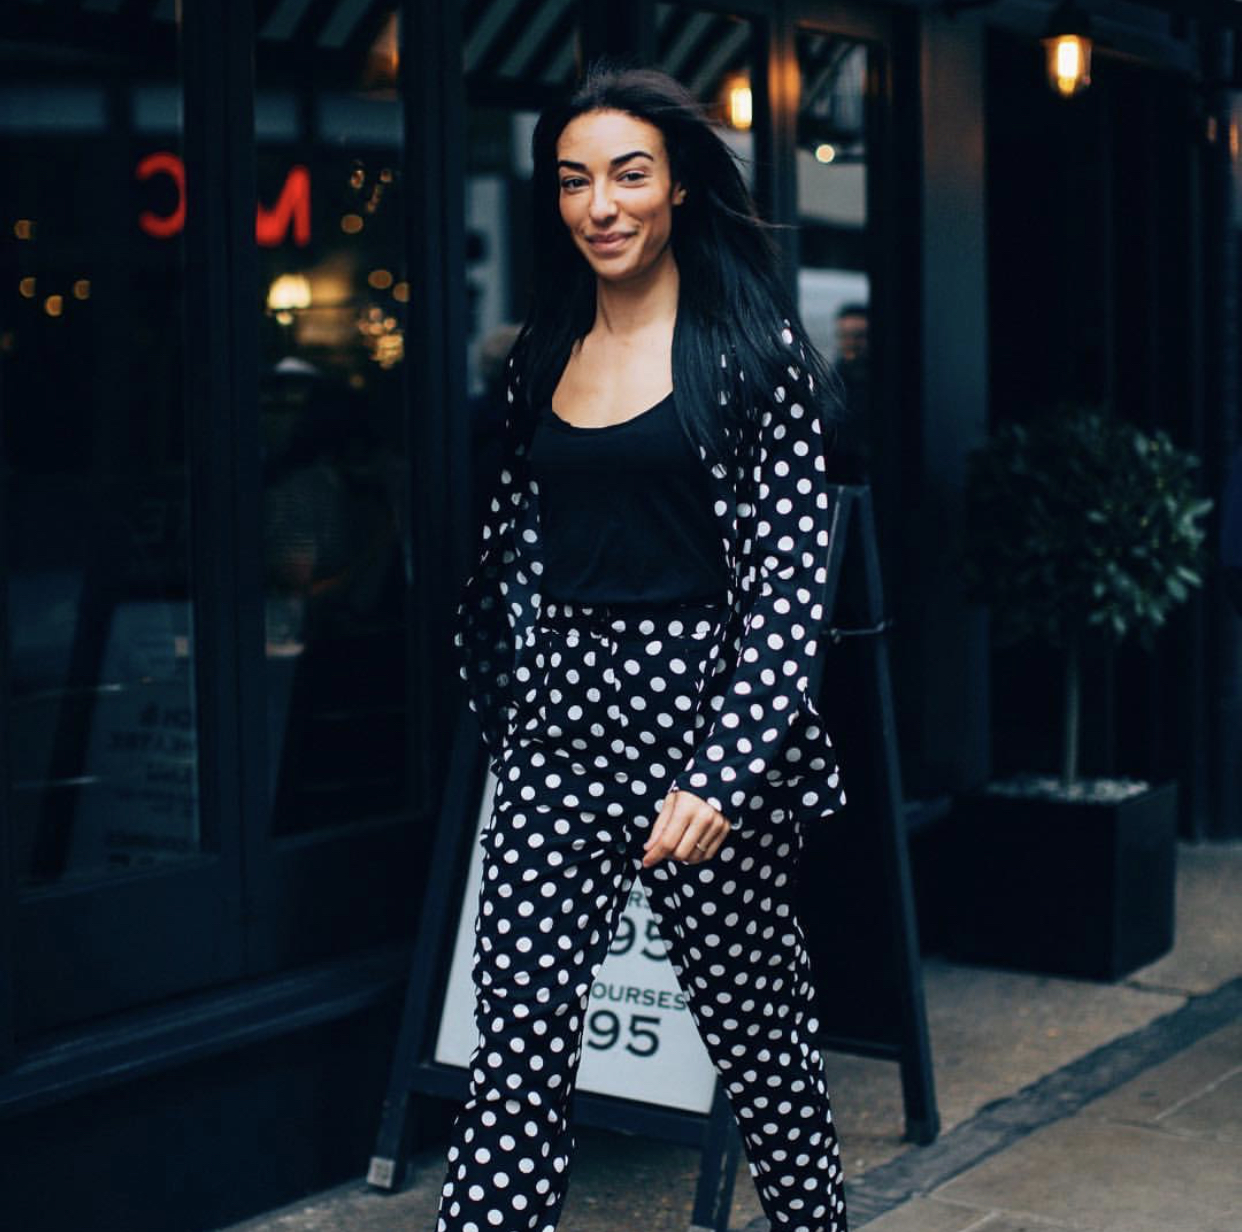 polka-dot-spring-outfit-corporate-style-story